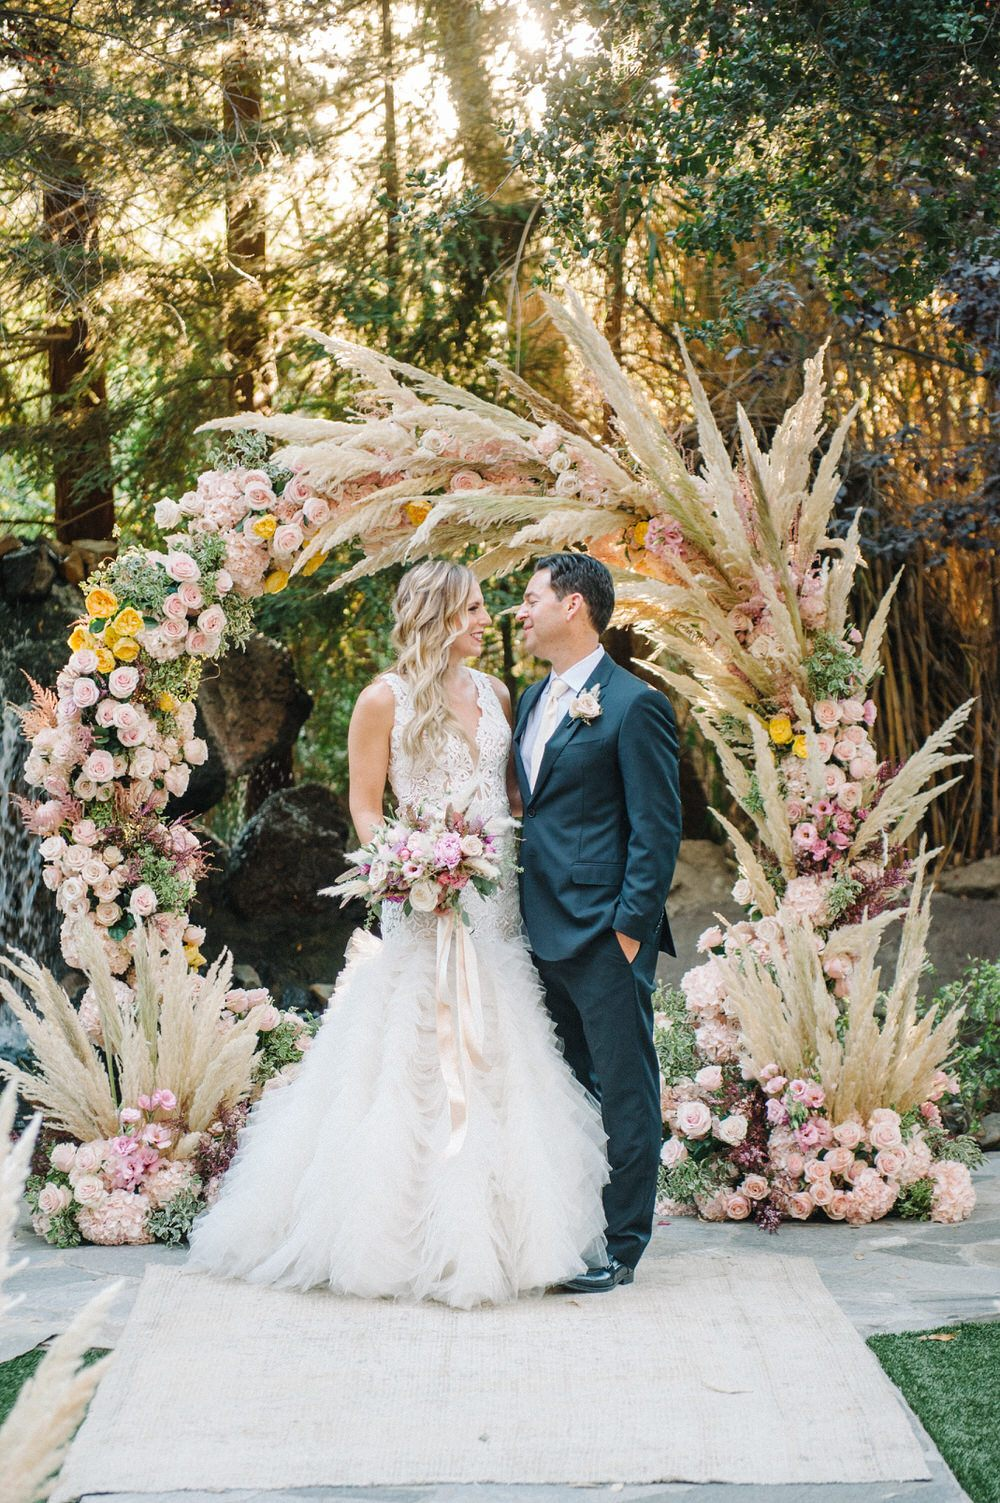 bride and groom smile in front of pampas grass ceremony decor